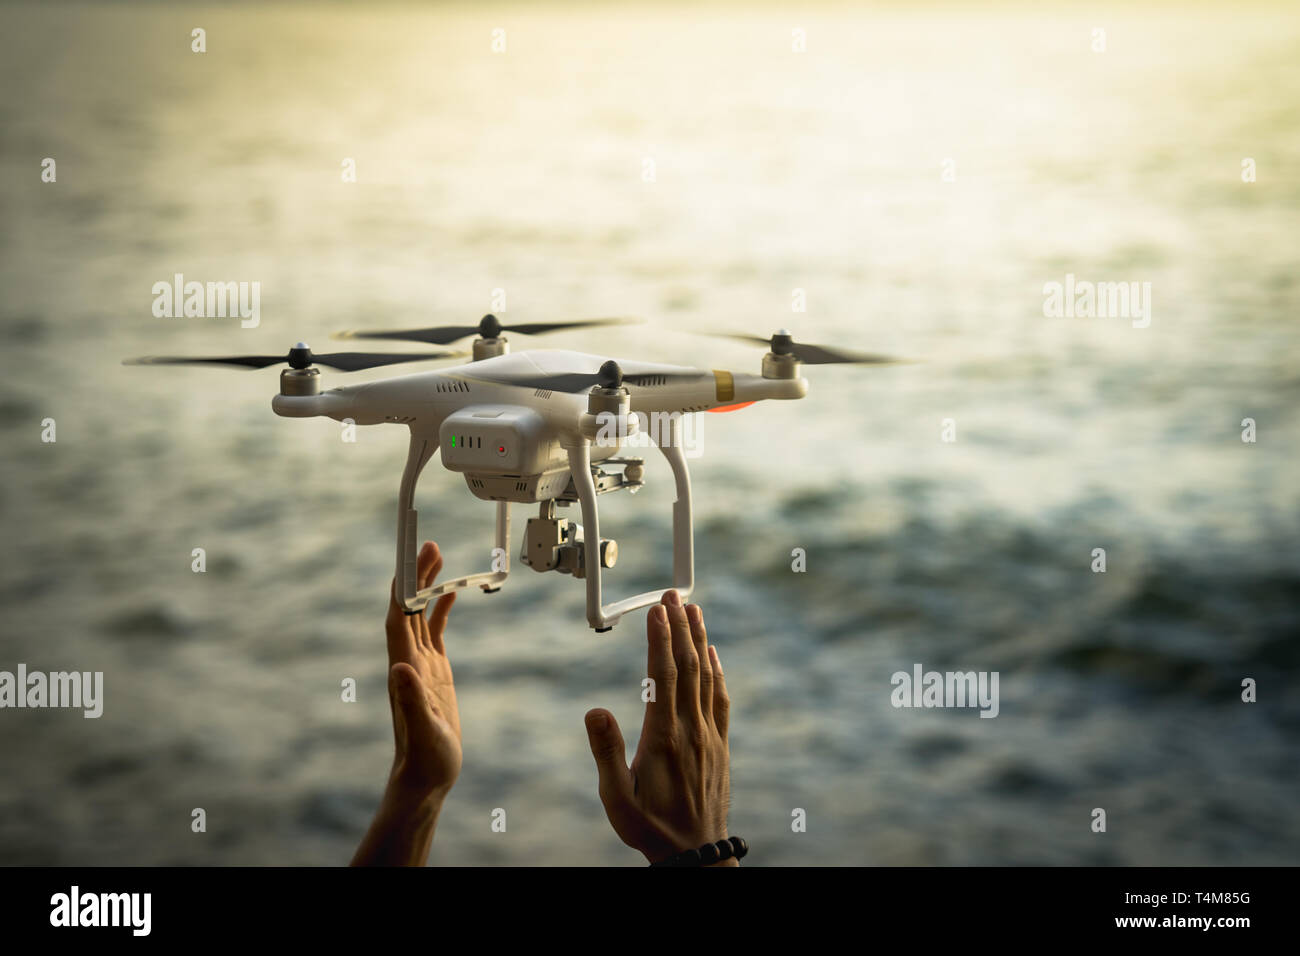 Drone flying on sea with human hands - Stock Image